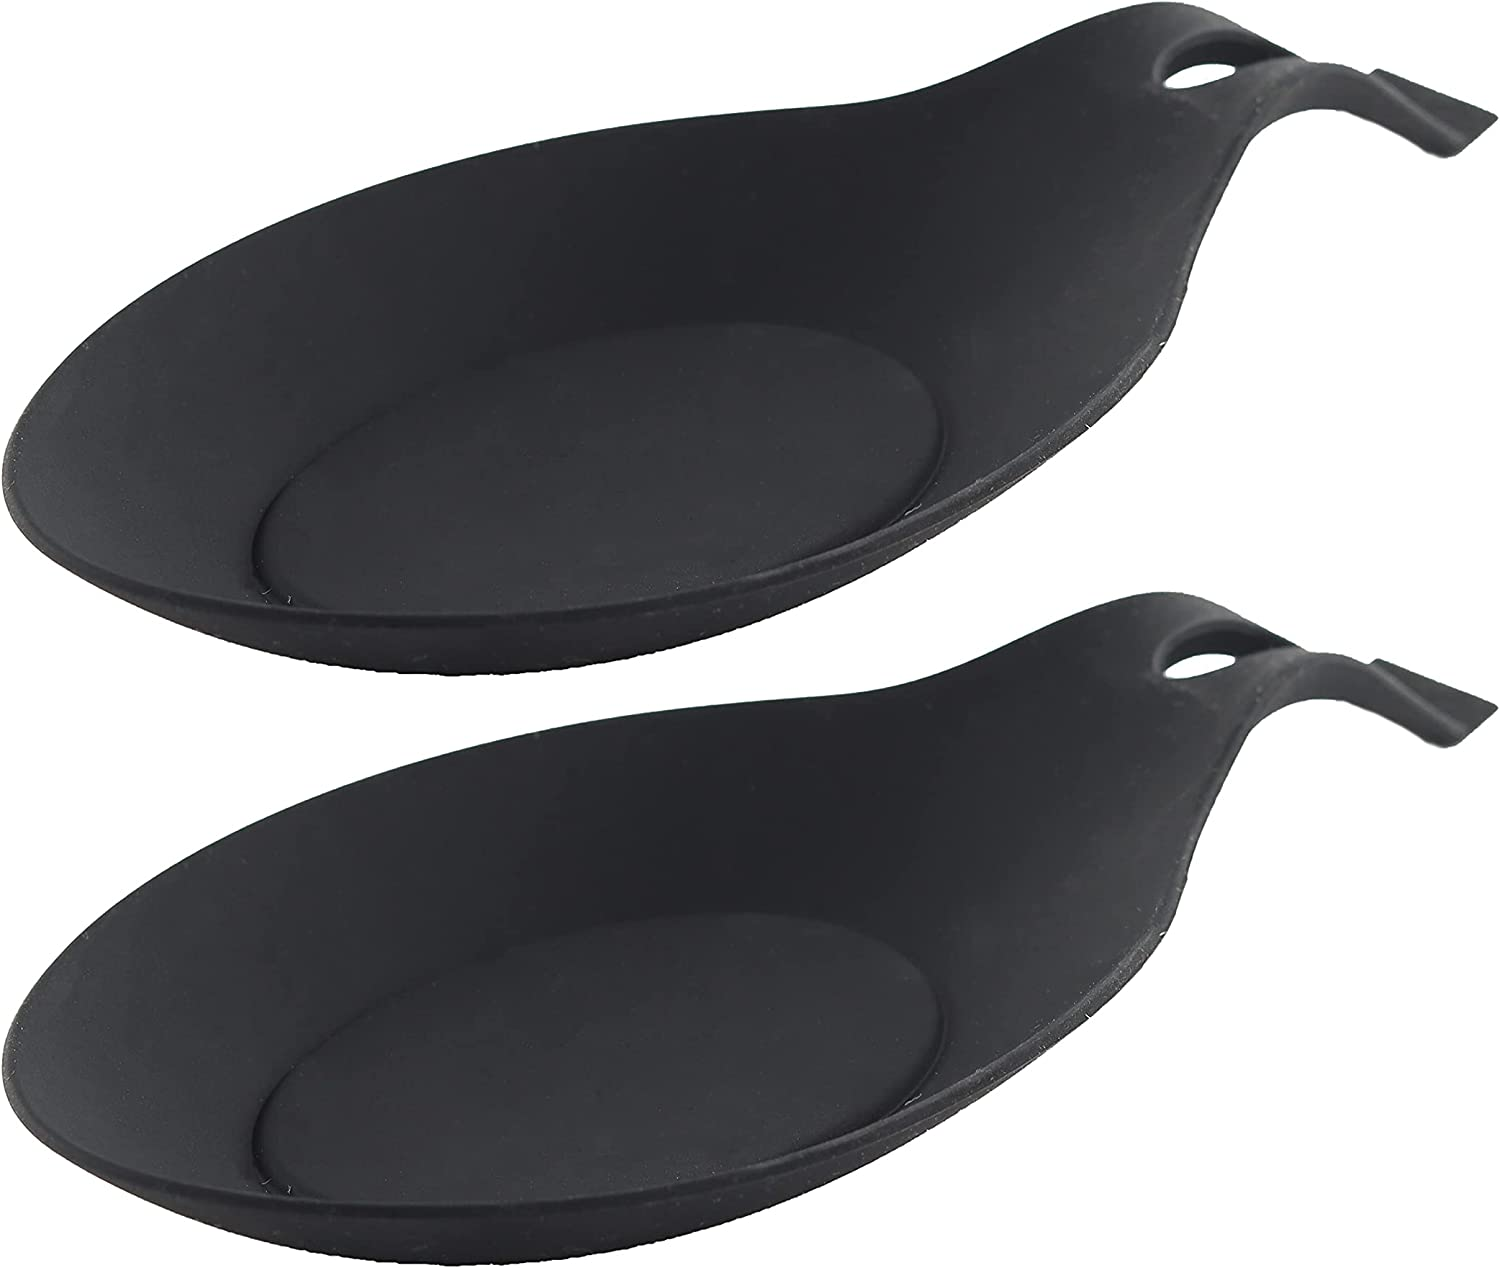 Round Silicone Spoon Rests favorite Max 80% OFF - of 2 Set Black